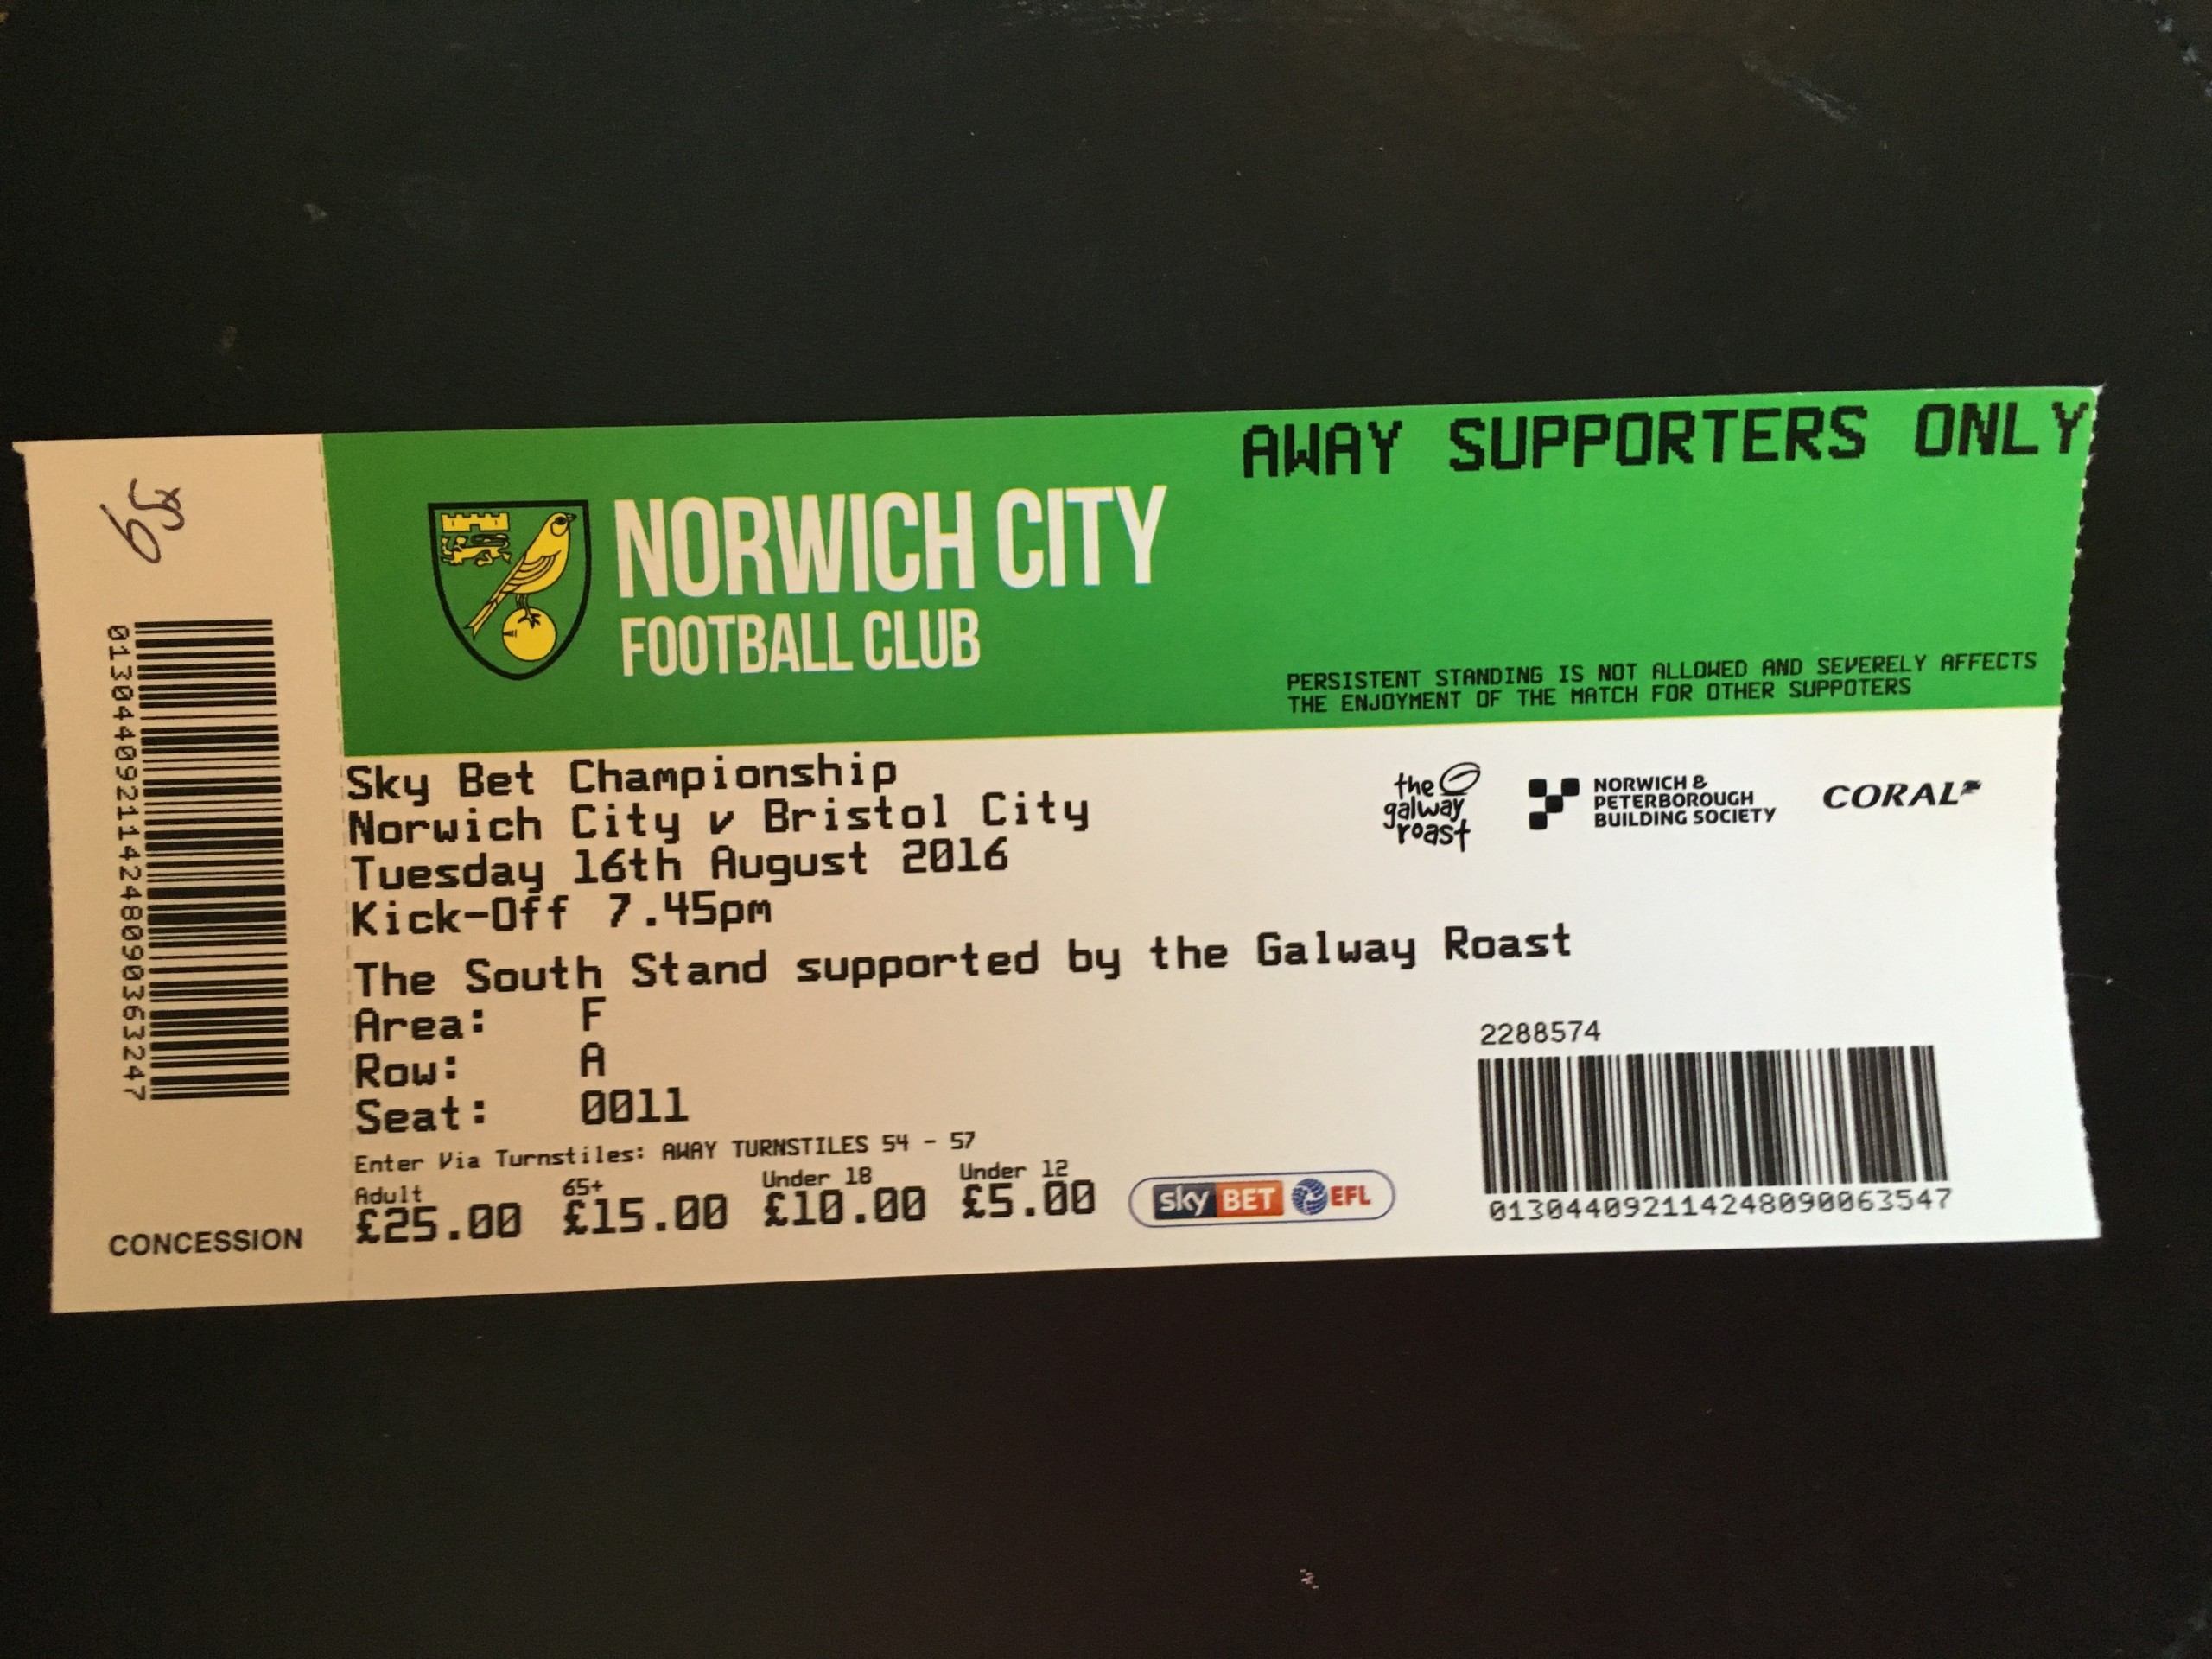 Norwich City v Bristol City 16-08-2016 Ticket